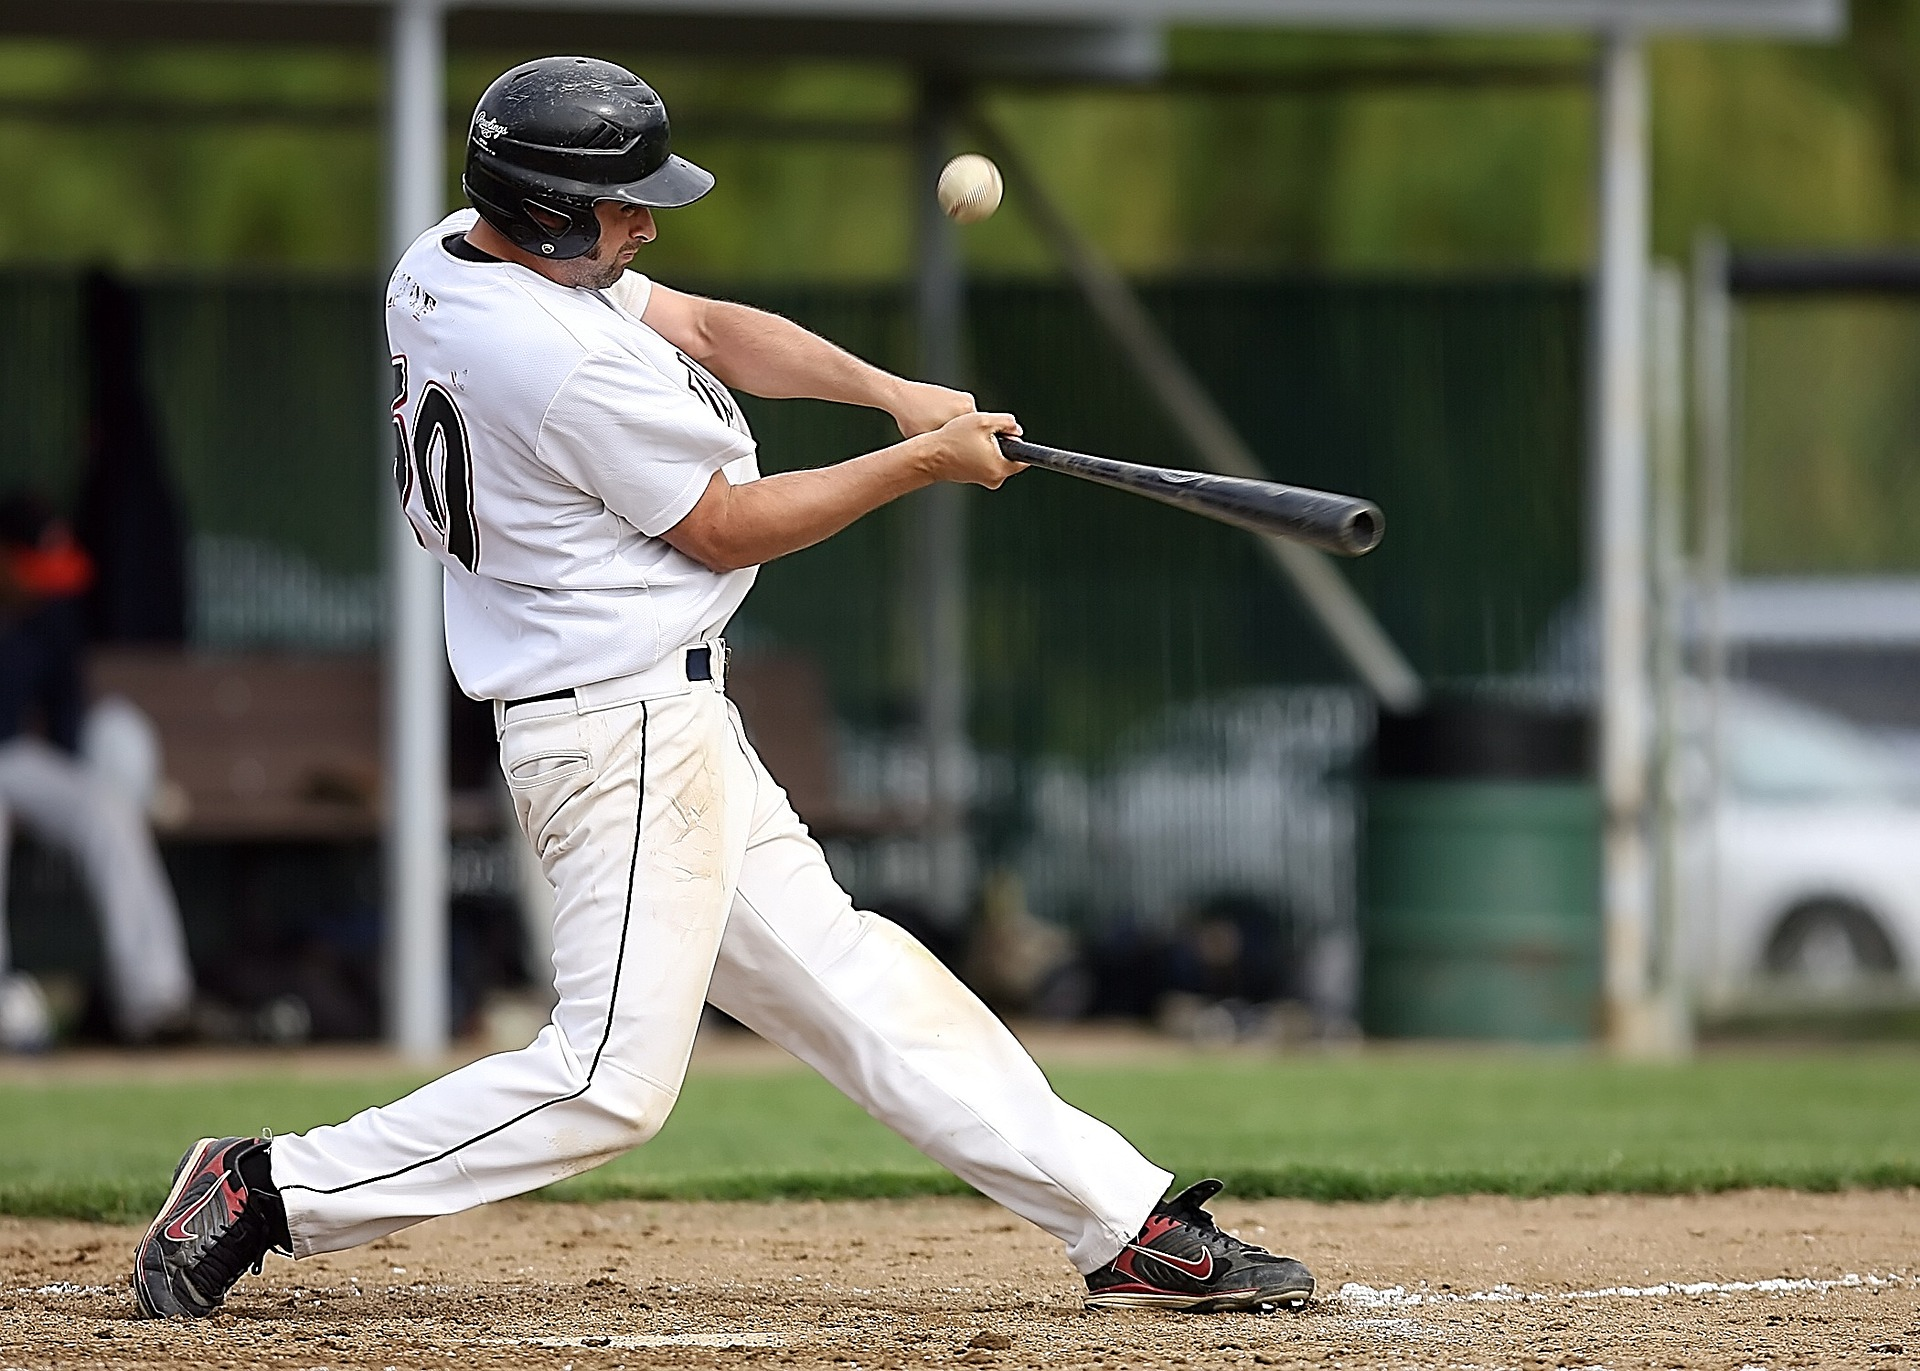 5 WAYS TO IMPROVE YOUR BAT SWING